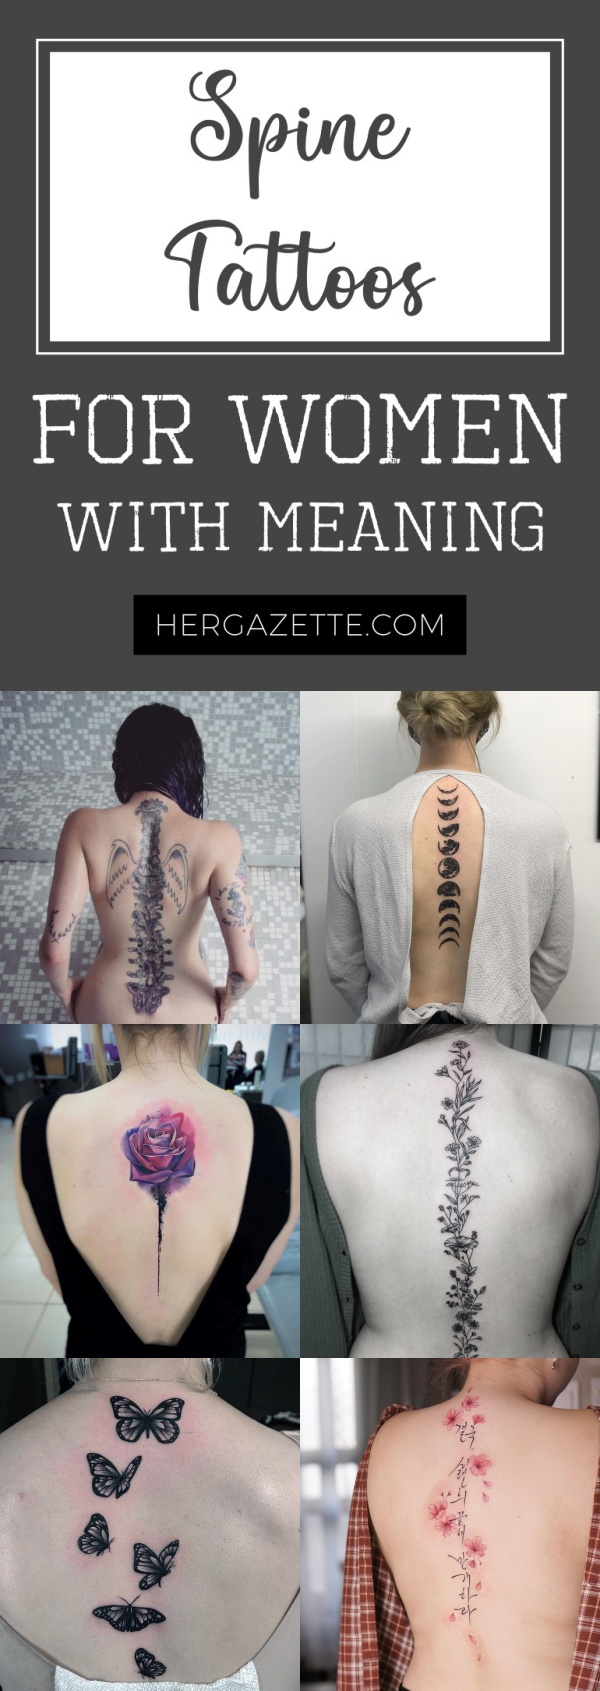 Spine Tattoos For Women With Meaning